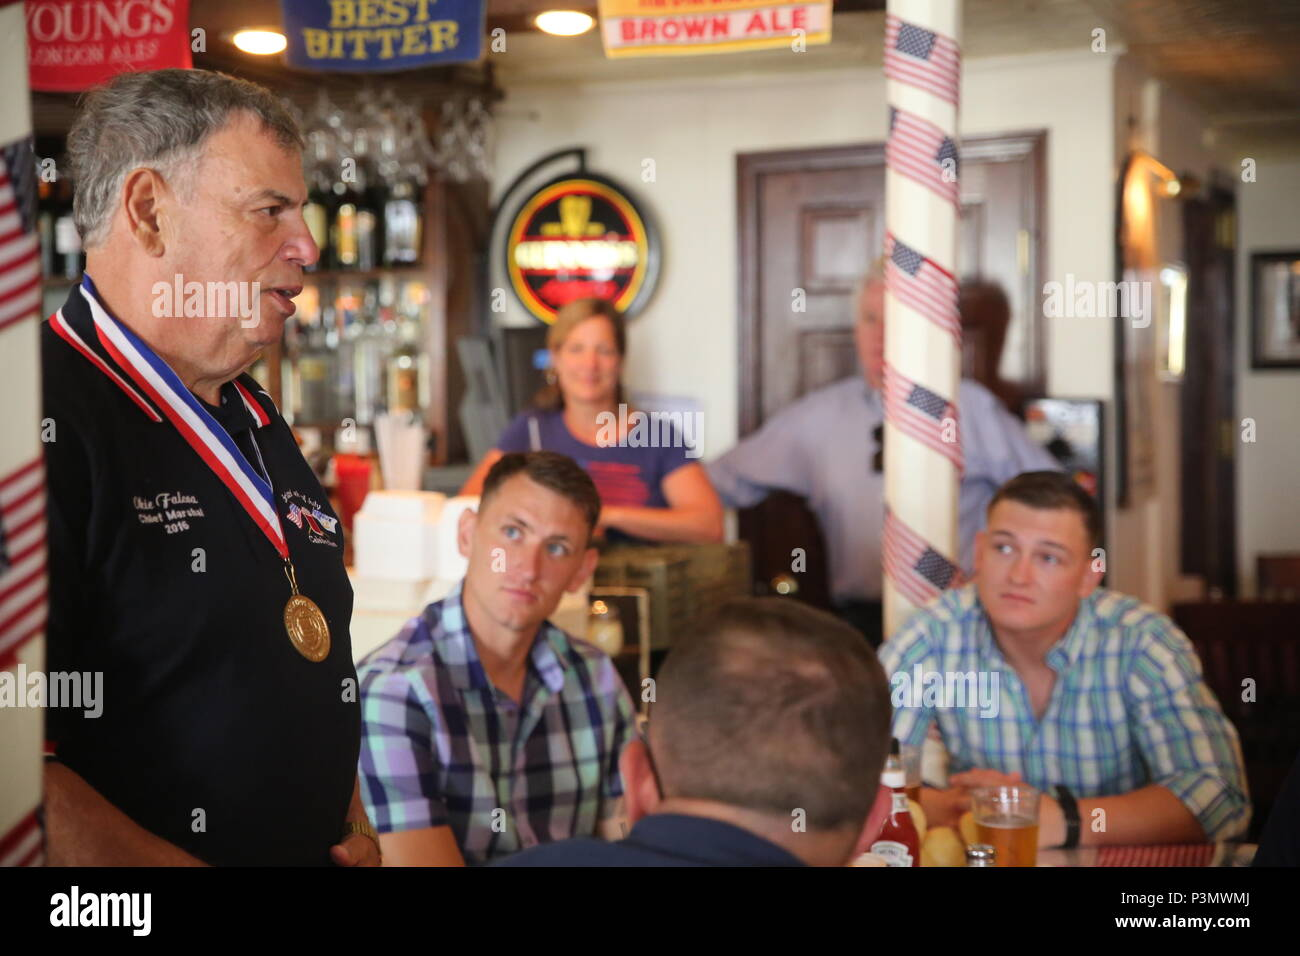 Okie falcoa chief marshal of the bristol fourth of july parade okie falcoa chief marshal of the bristol fourth of july parade welcomes marines and sailors during a pub luncheon in bristol rhode island july 2 2016 m4hsunfo